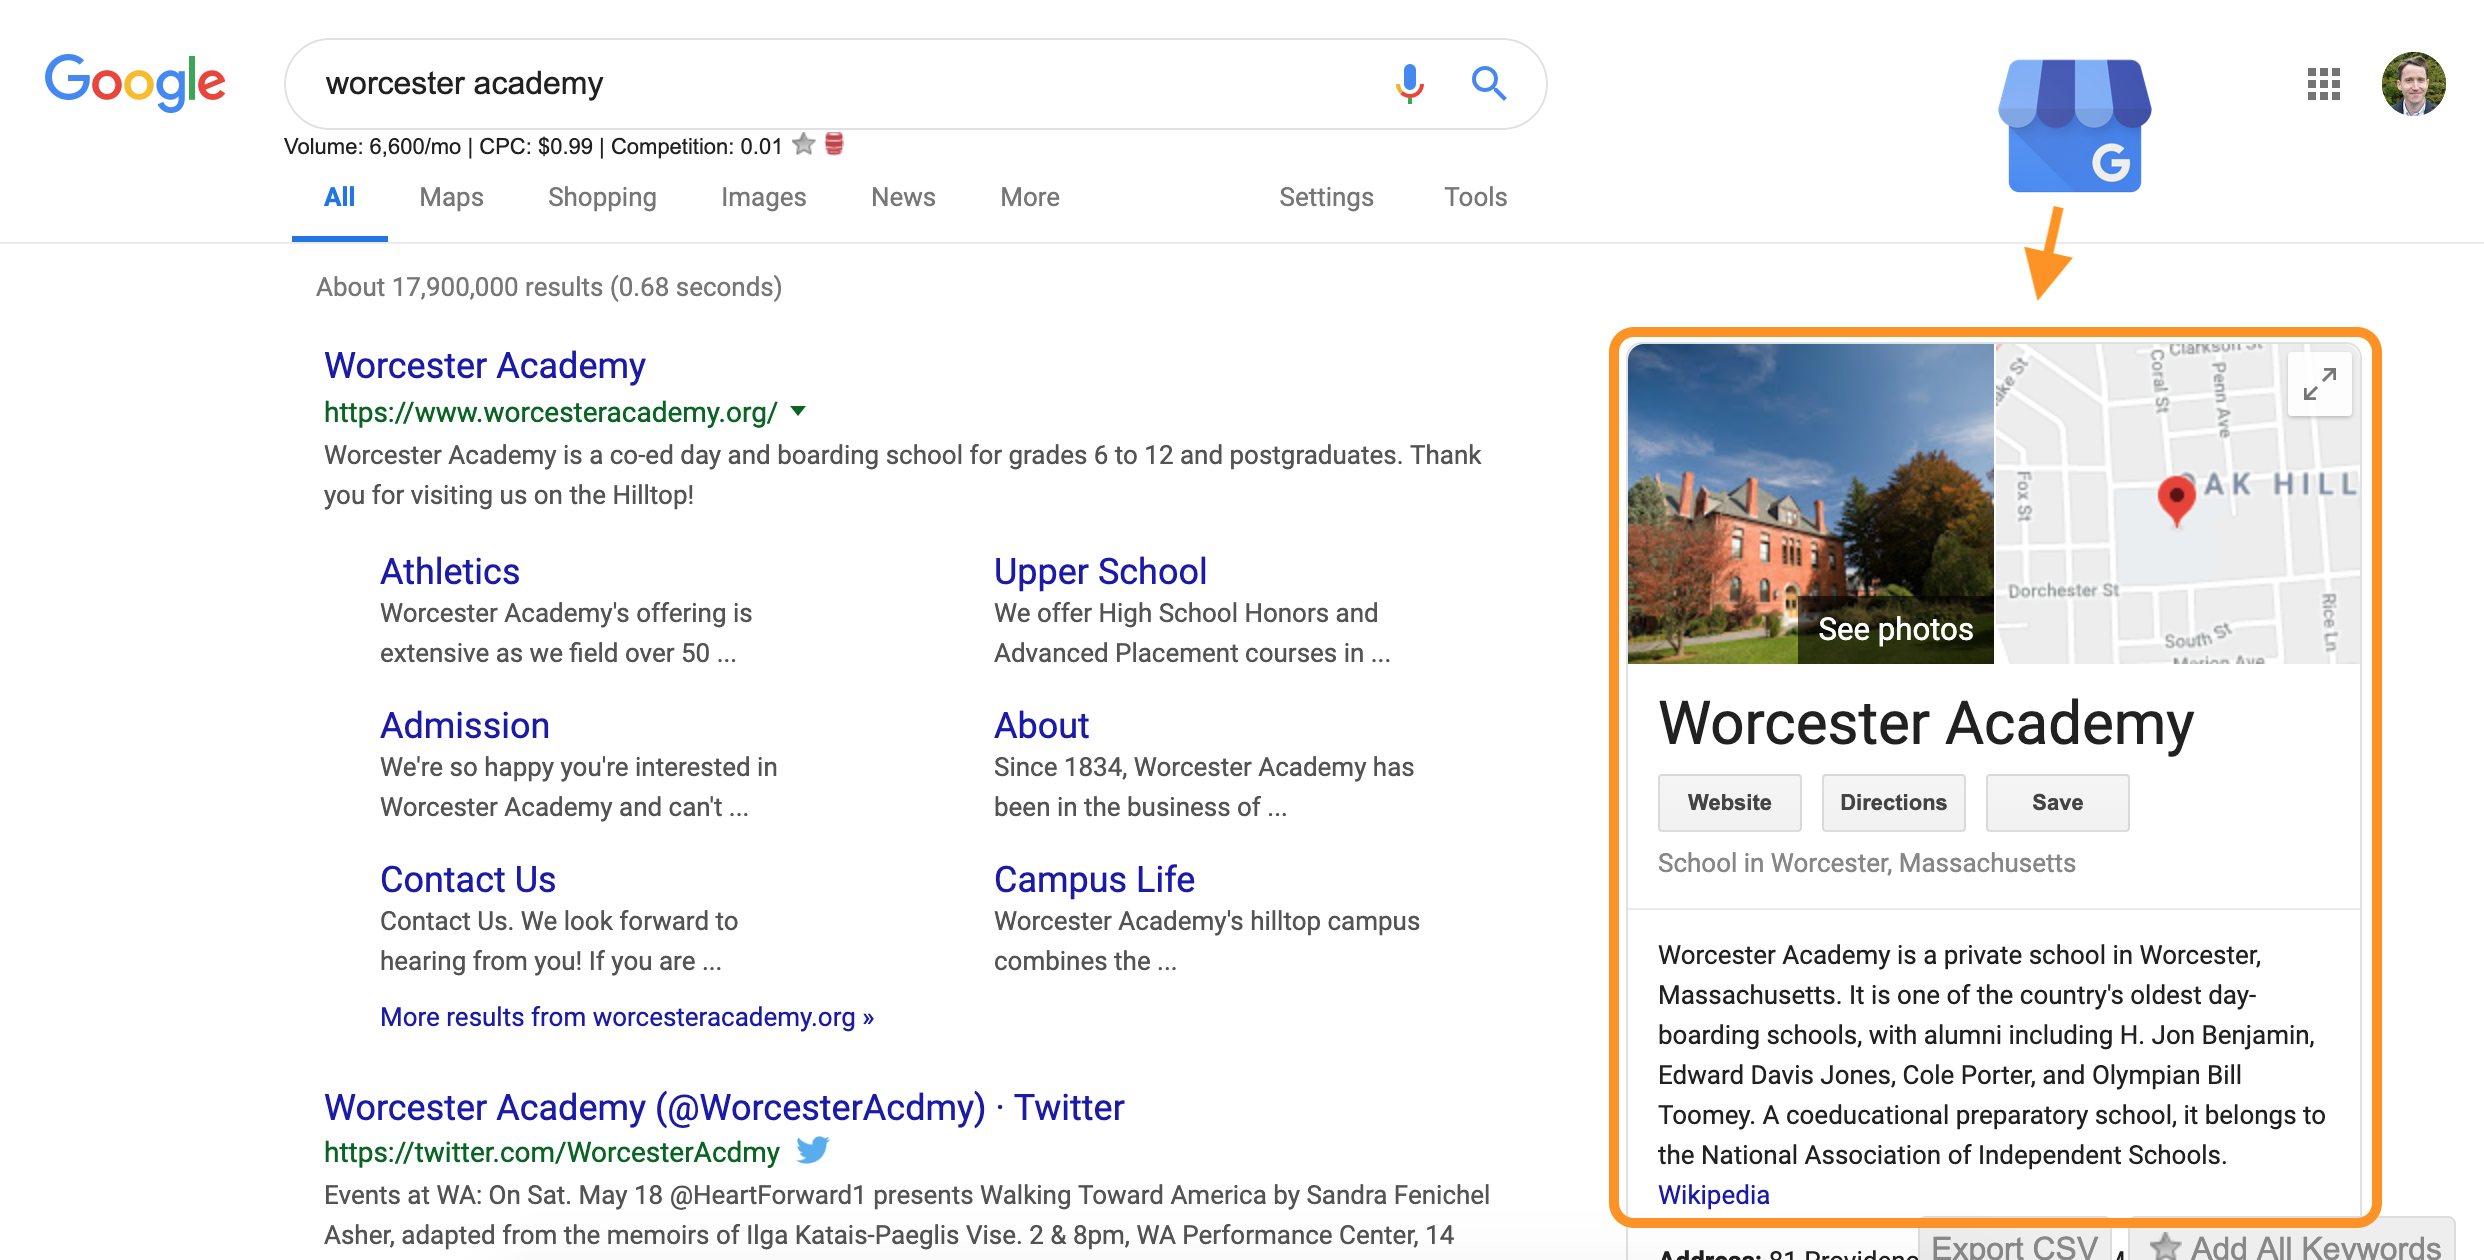 Worcester Academy Google My Business Listing